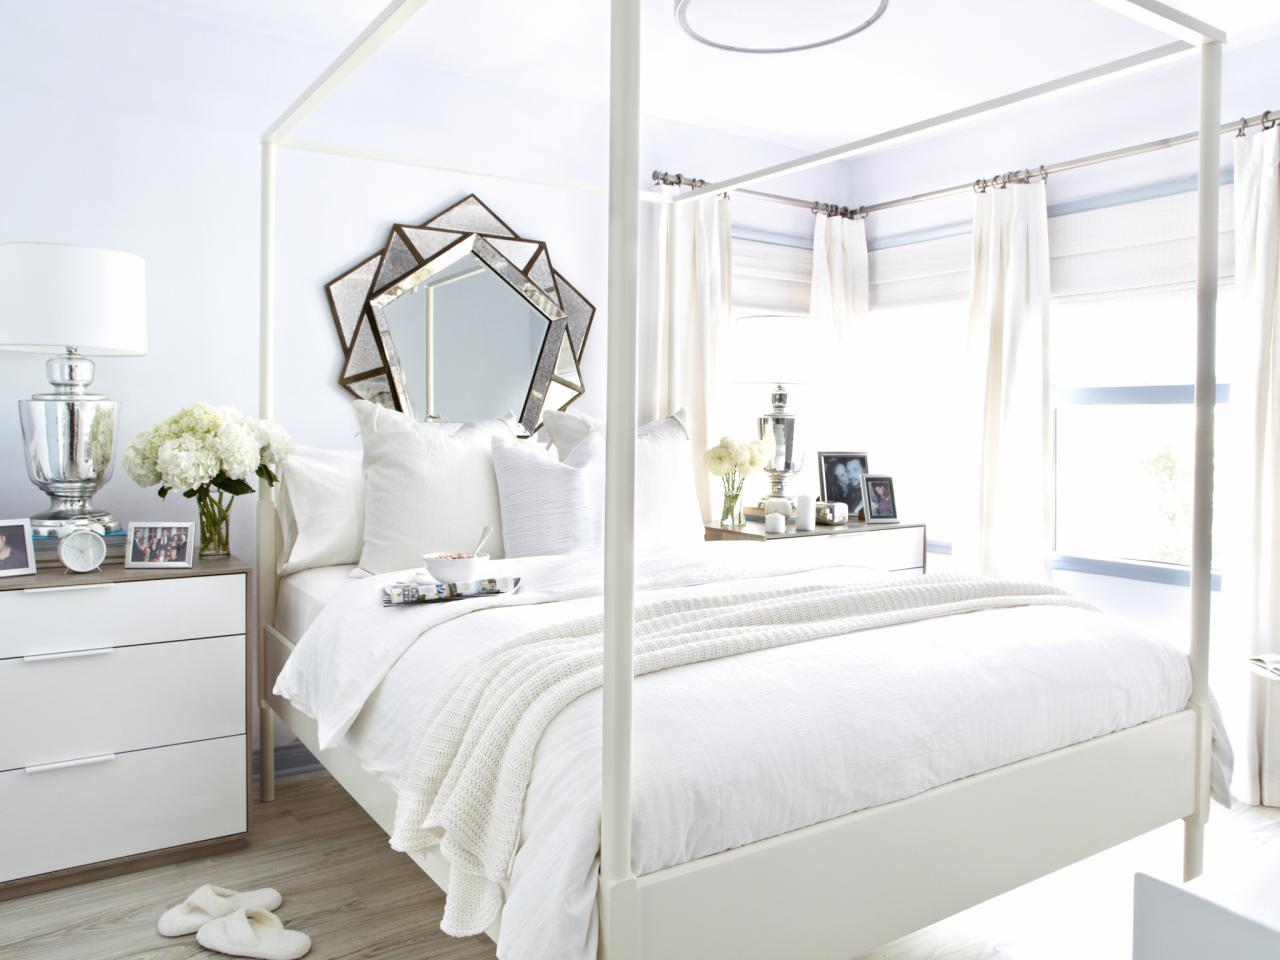 How to Pull Off an All-White Room